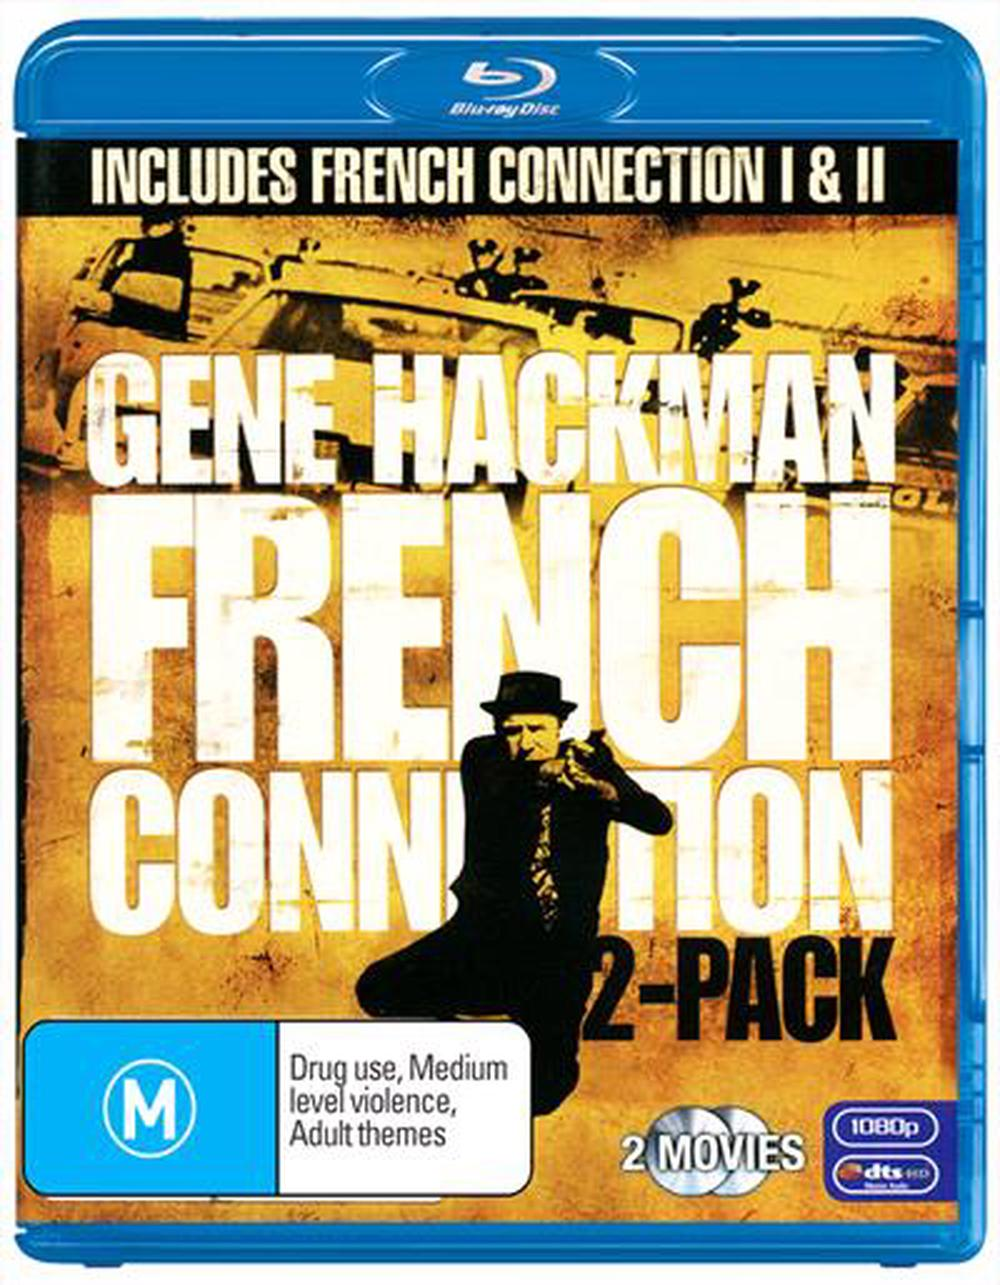 French Connection / French Connection 2